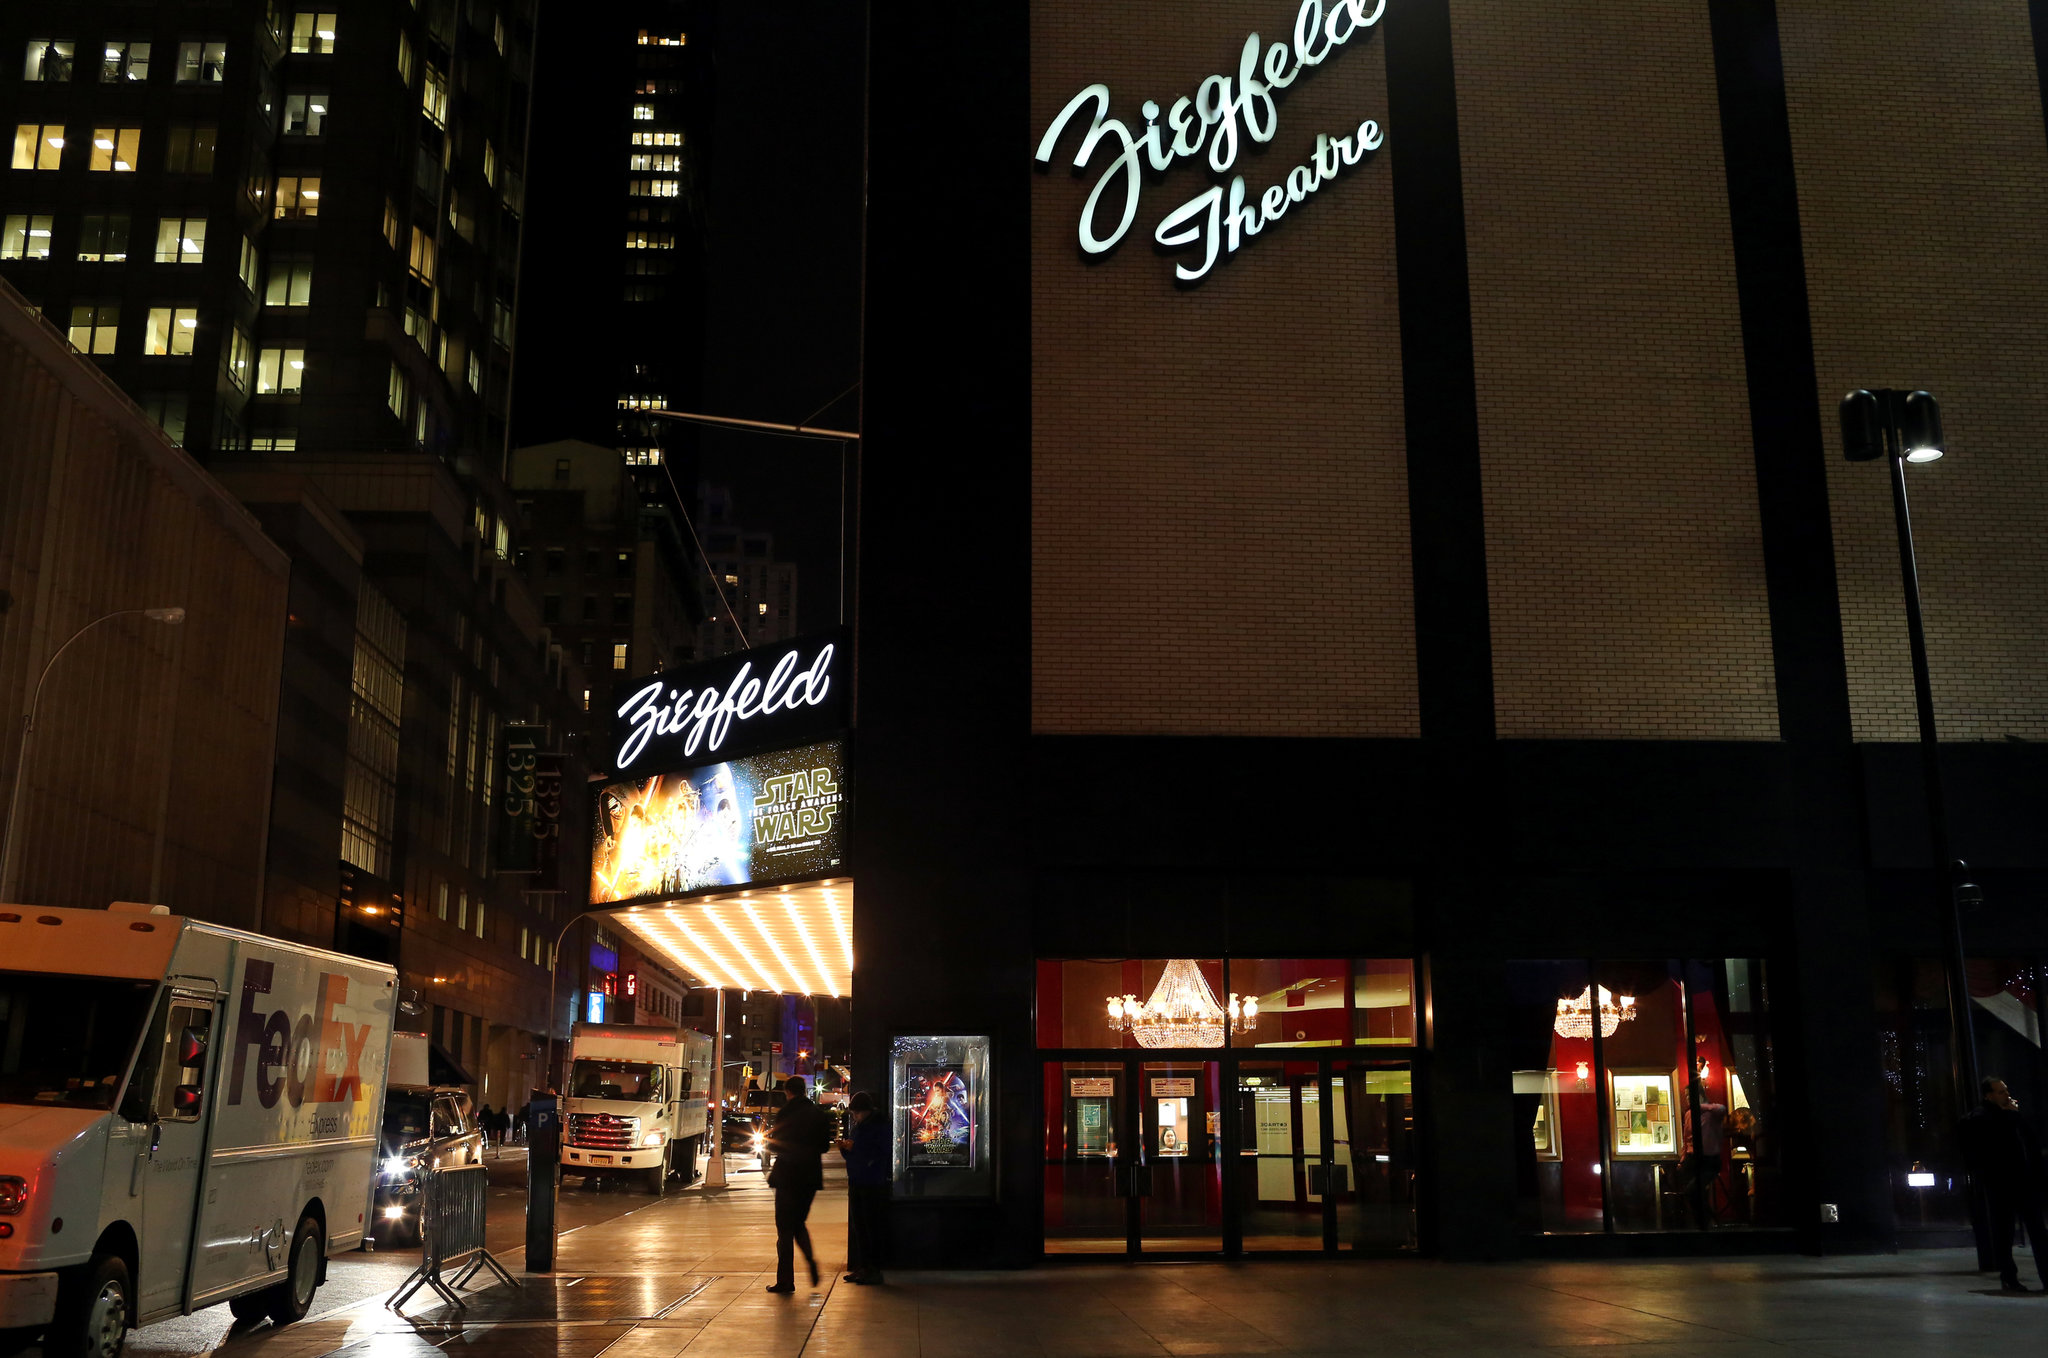 The Ziegfeld Theater (141 West 54th St)